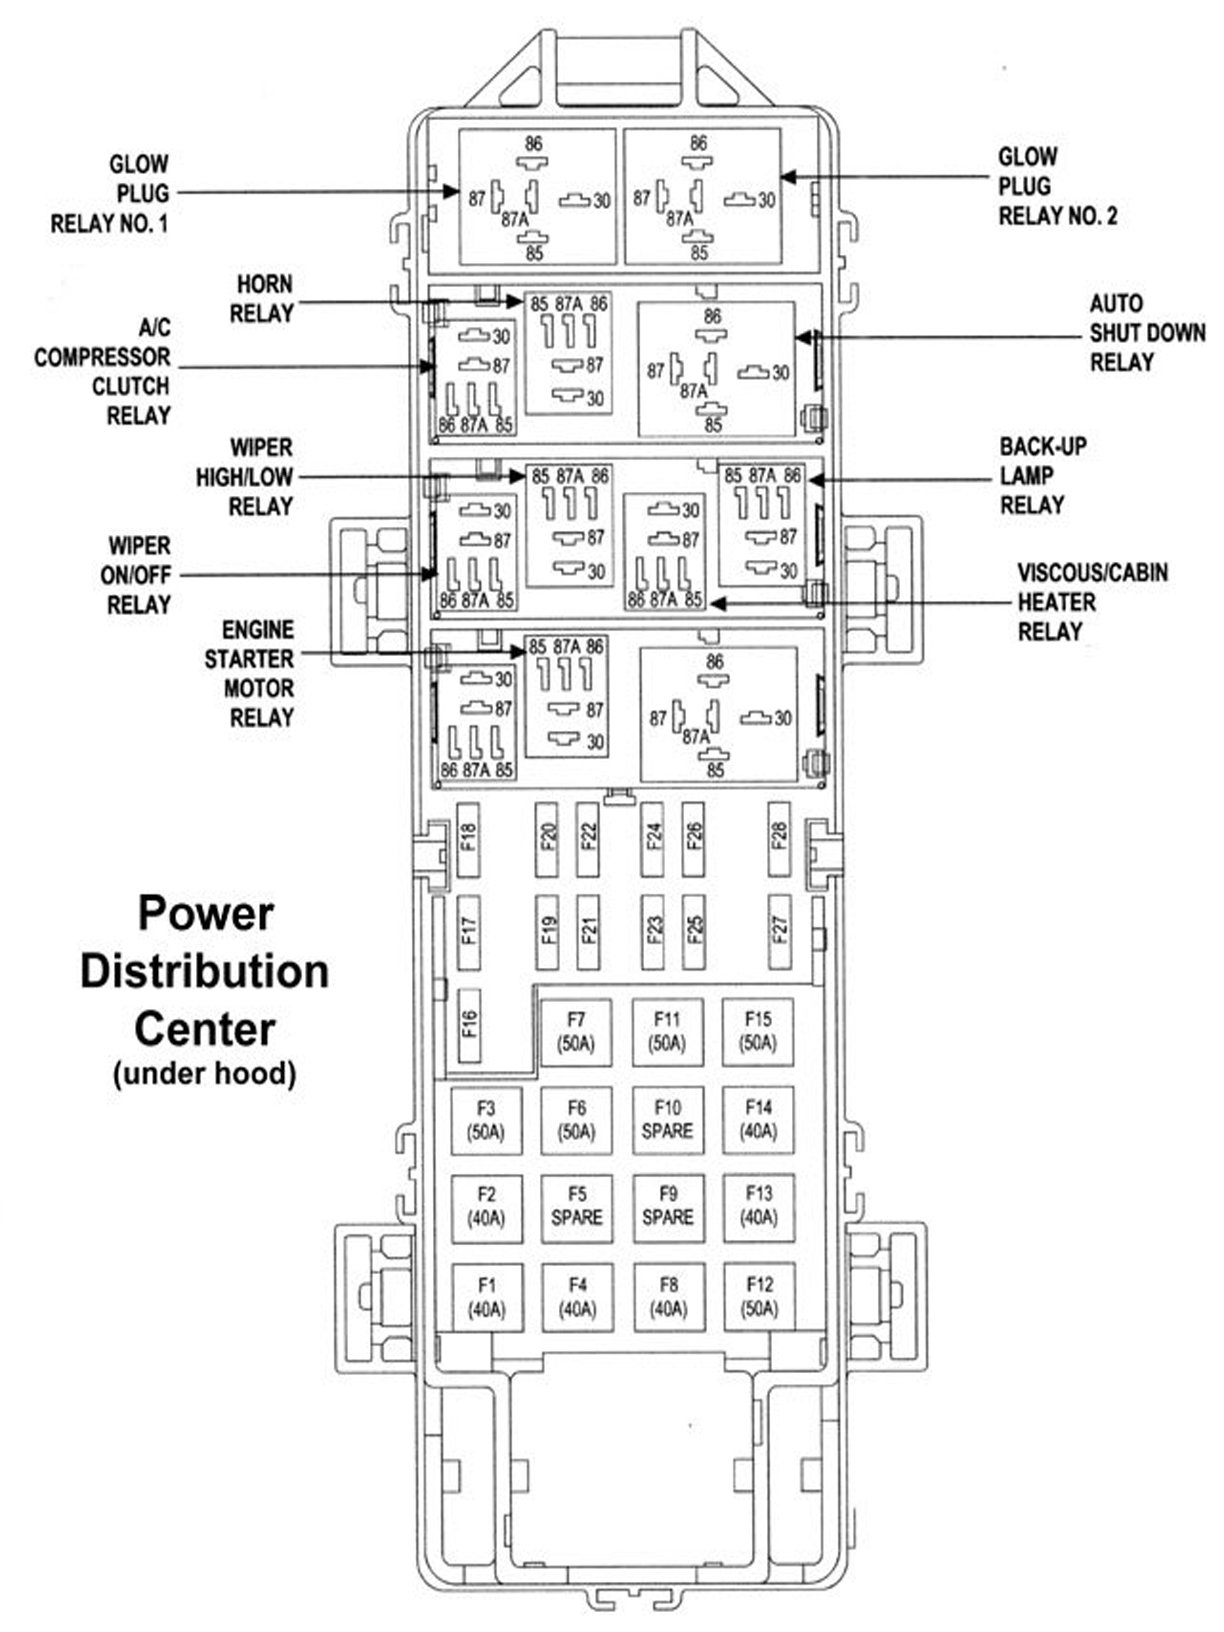 2003 Jeep Grand Cherokee Fuse Box Diagram Auto Electrical Wiring 1980 Fxb Shovelhead Wj 1999 To 2004